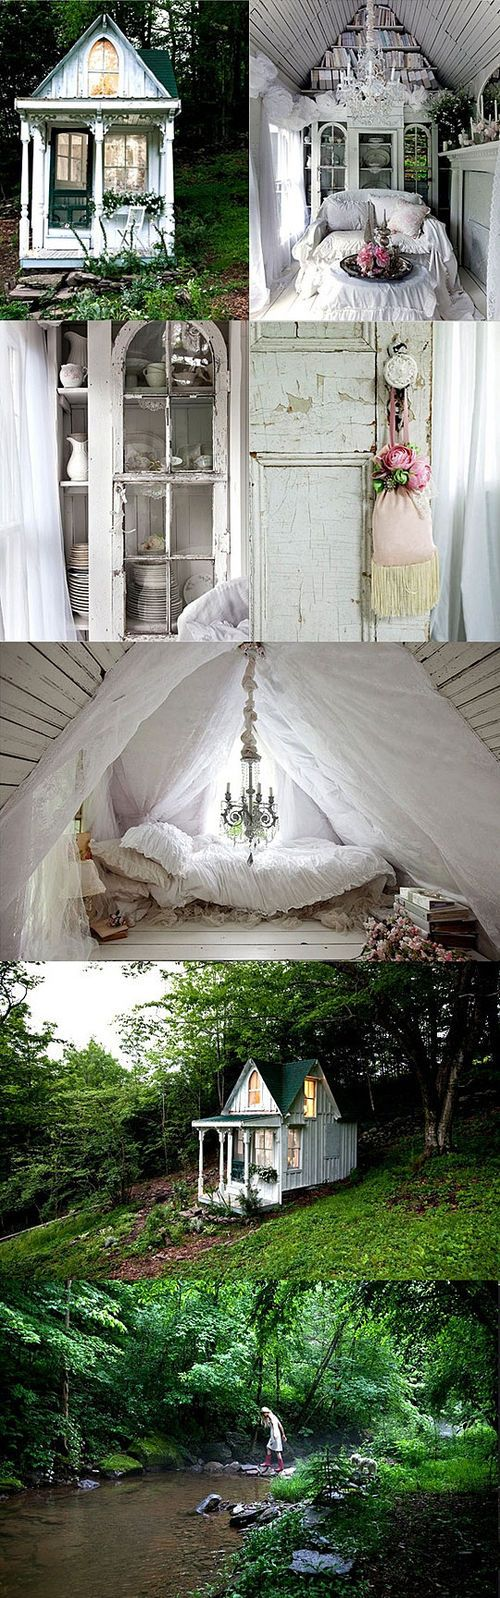 Astonishing A Real Tiny Dream House Tiny Houses Pinterest Beautiful Largest Home Design Picture Inspirations Pitcheantrous